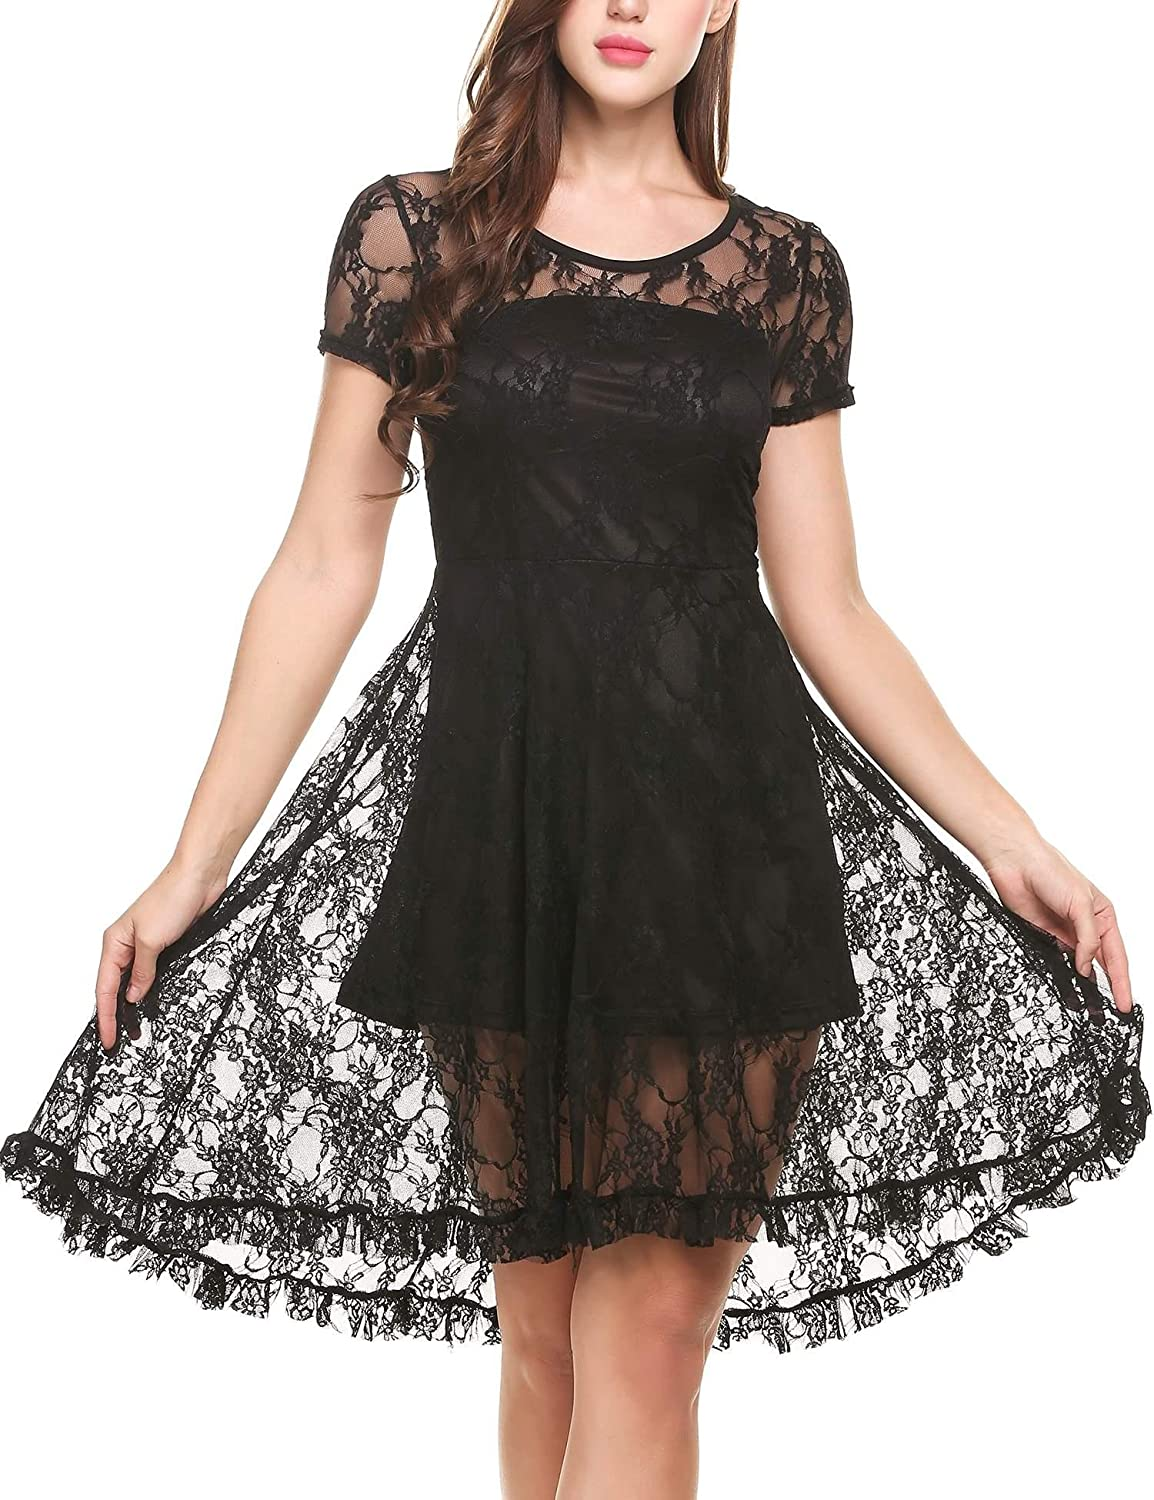 059772fb1741 Zeagoo Women 3 4 Sleeve Crew Neck Floral Lace Swing Cocktail Party Dress at  Amazon Women s Clothing store